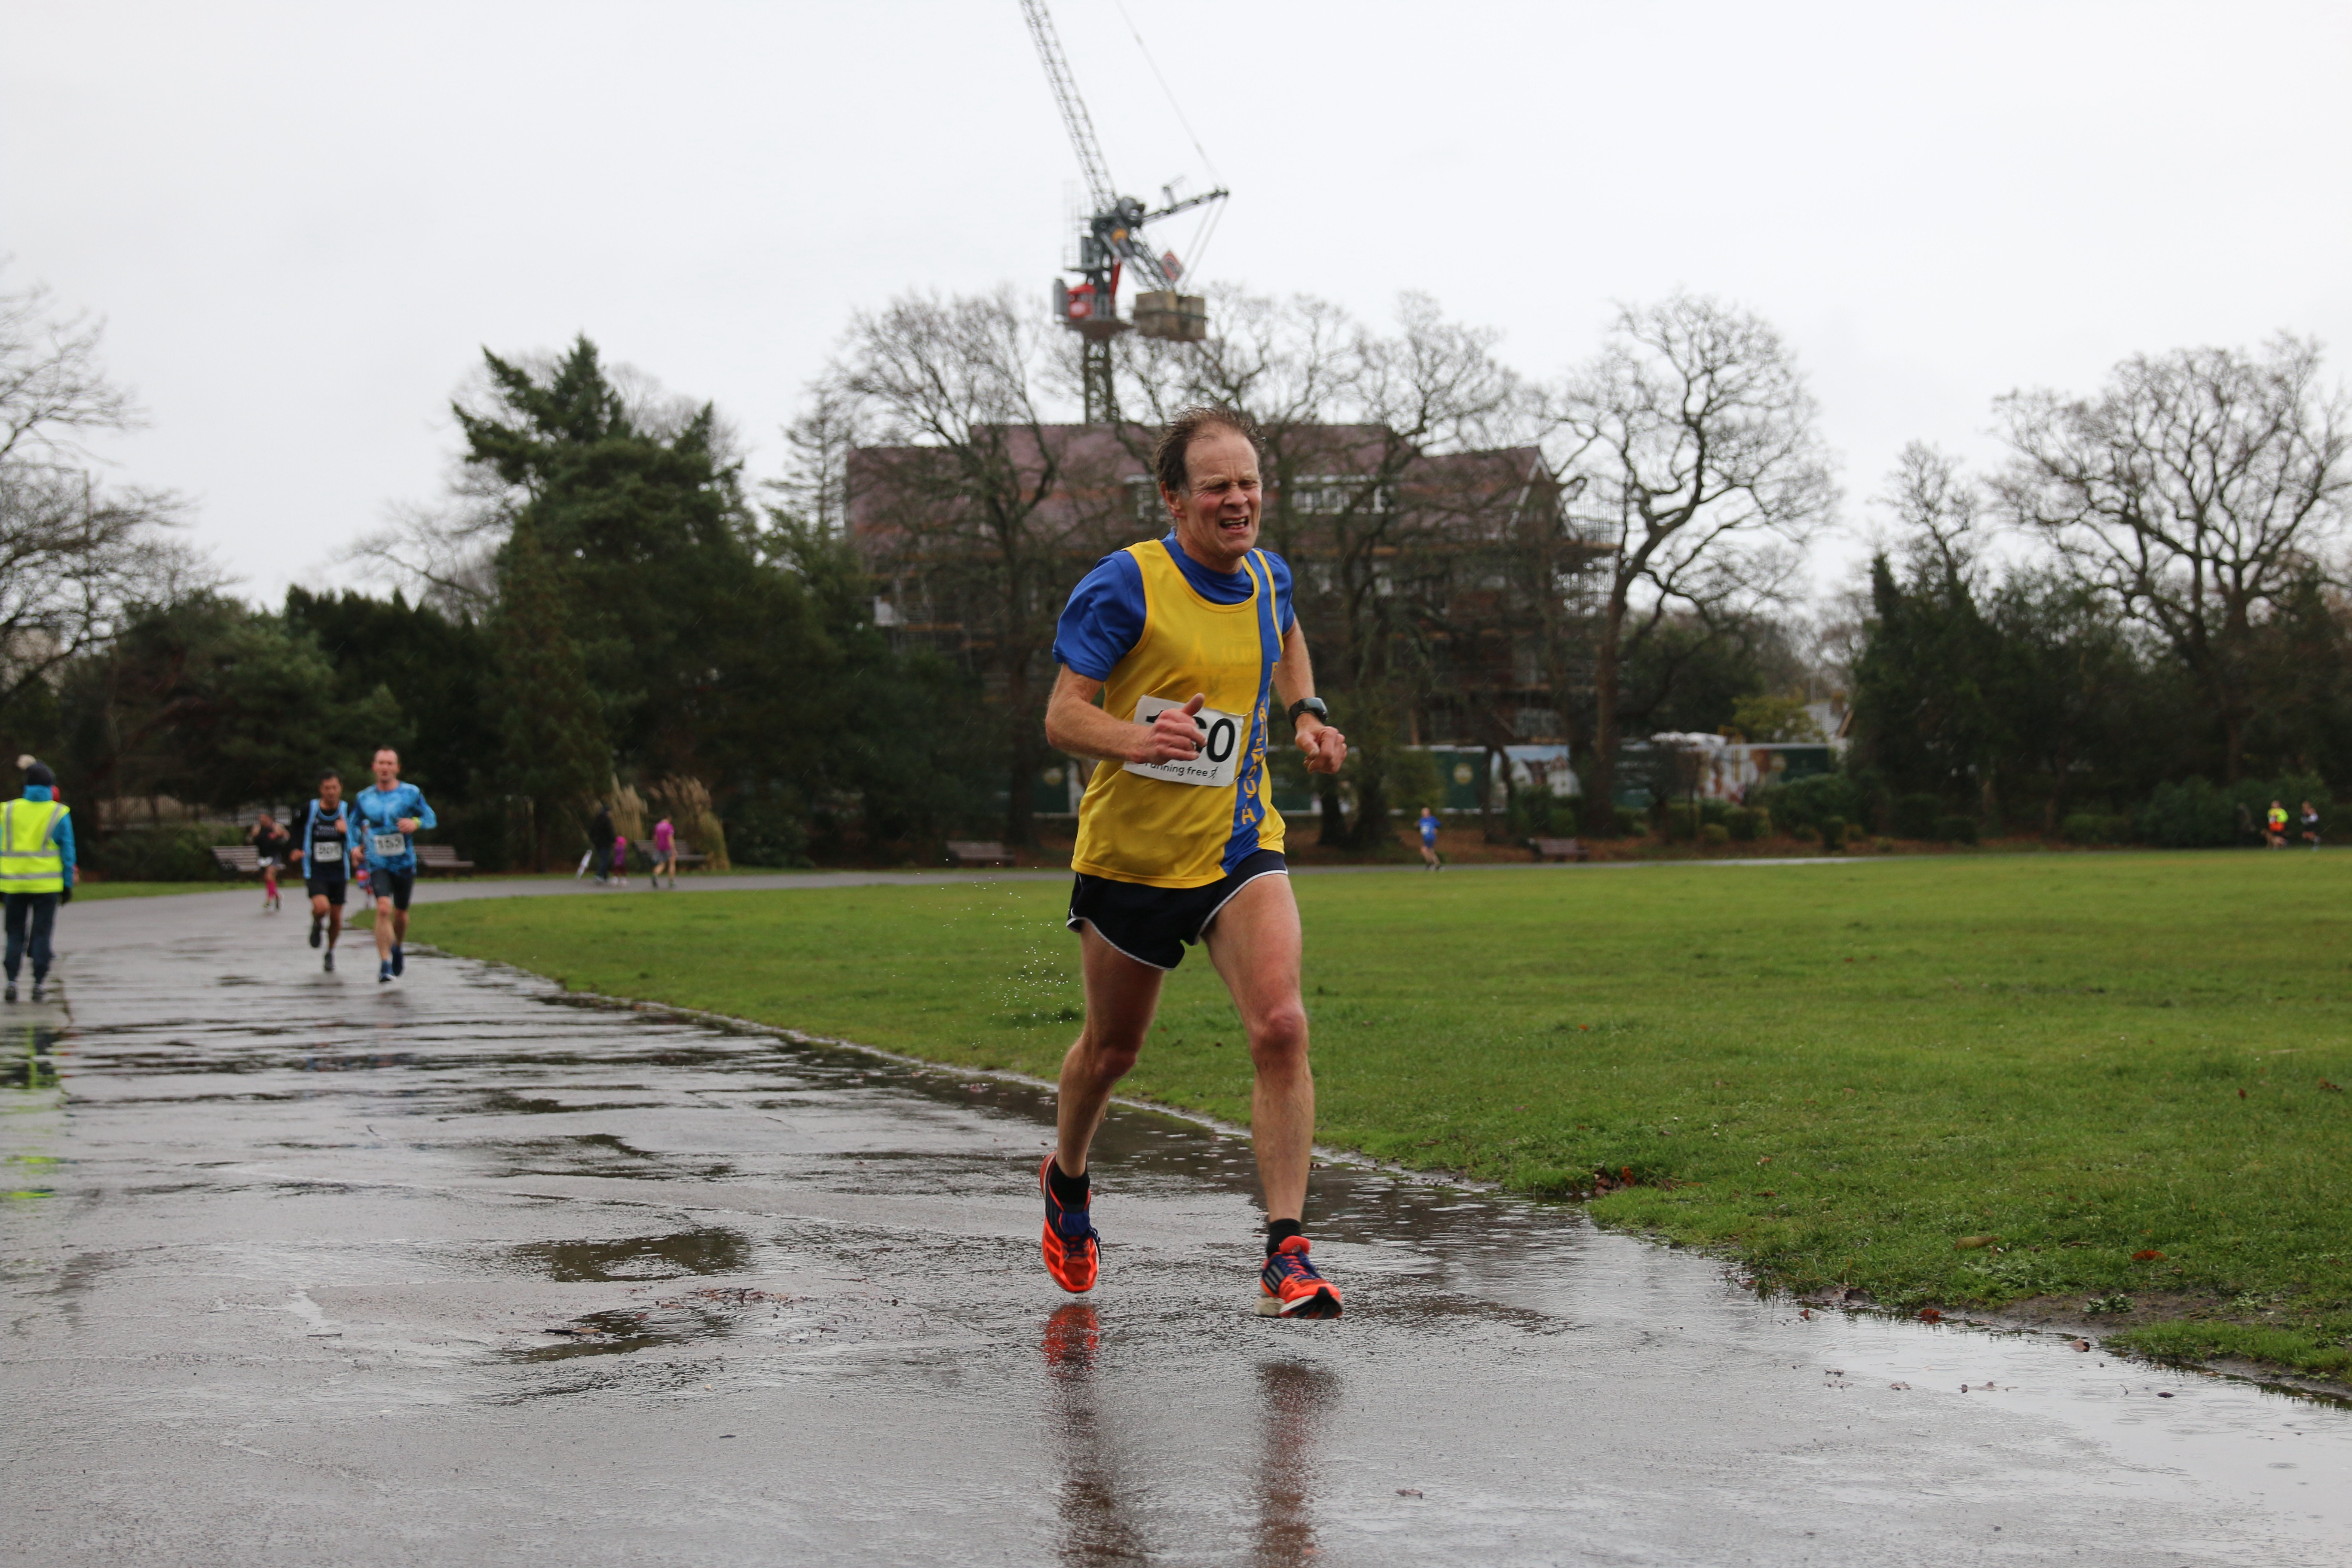 Jud gives it his all at the Round the Lakes 10k